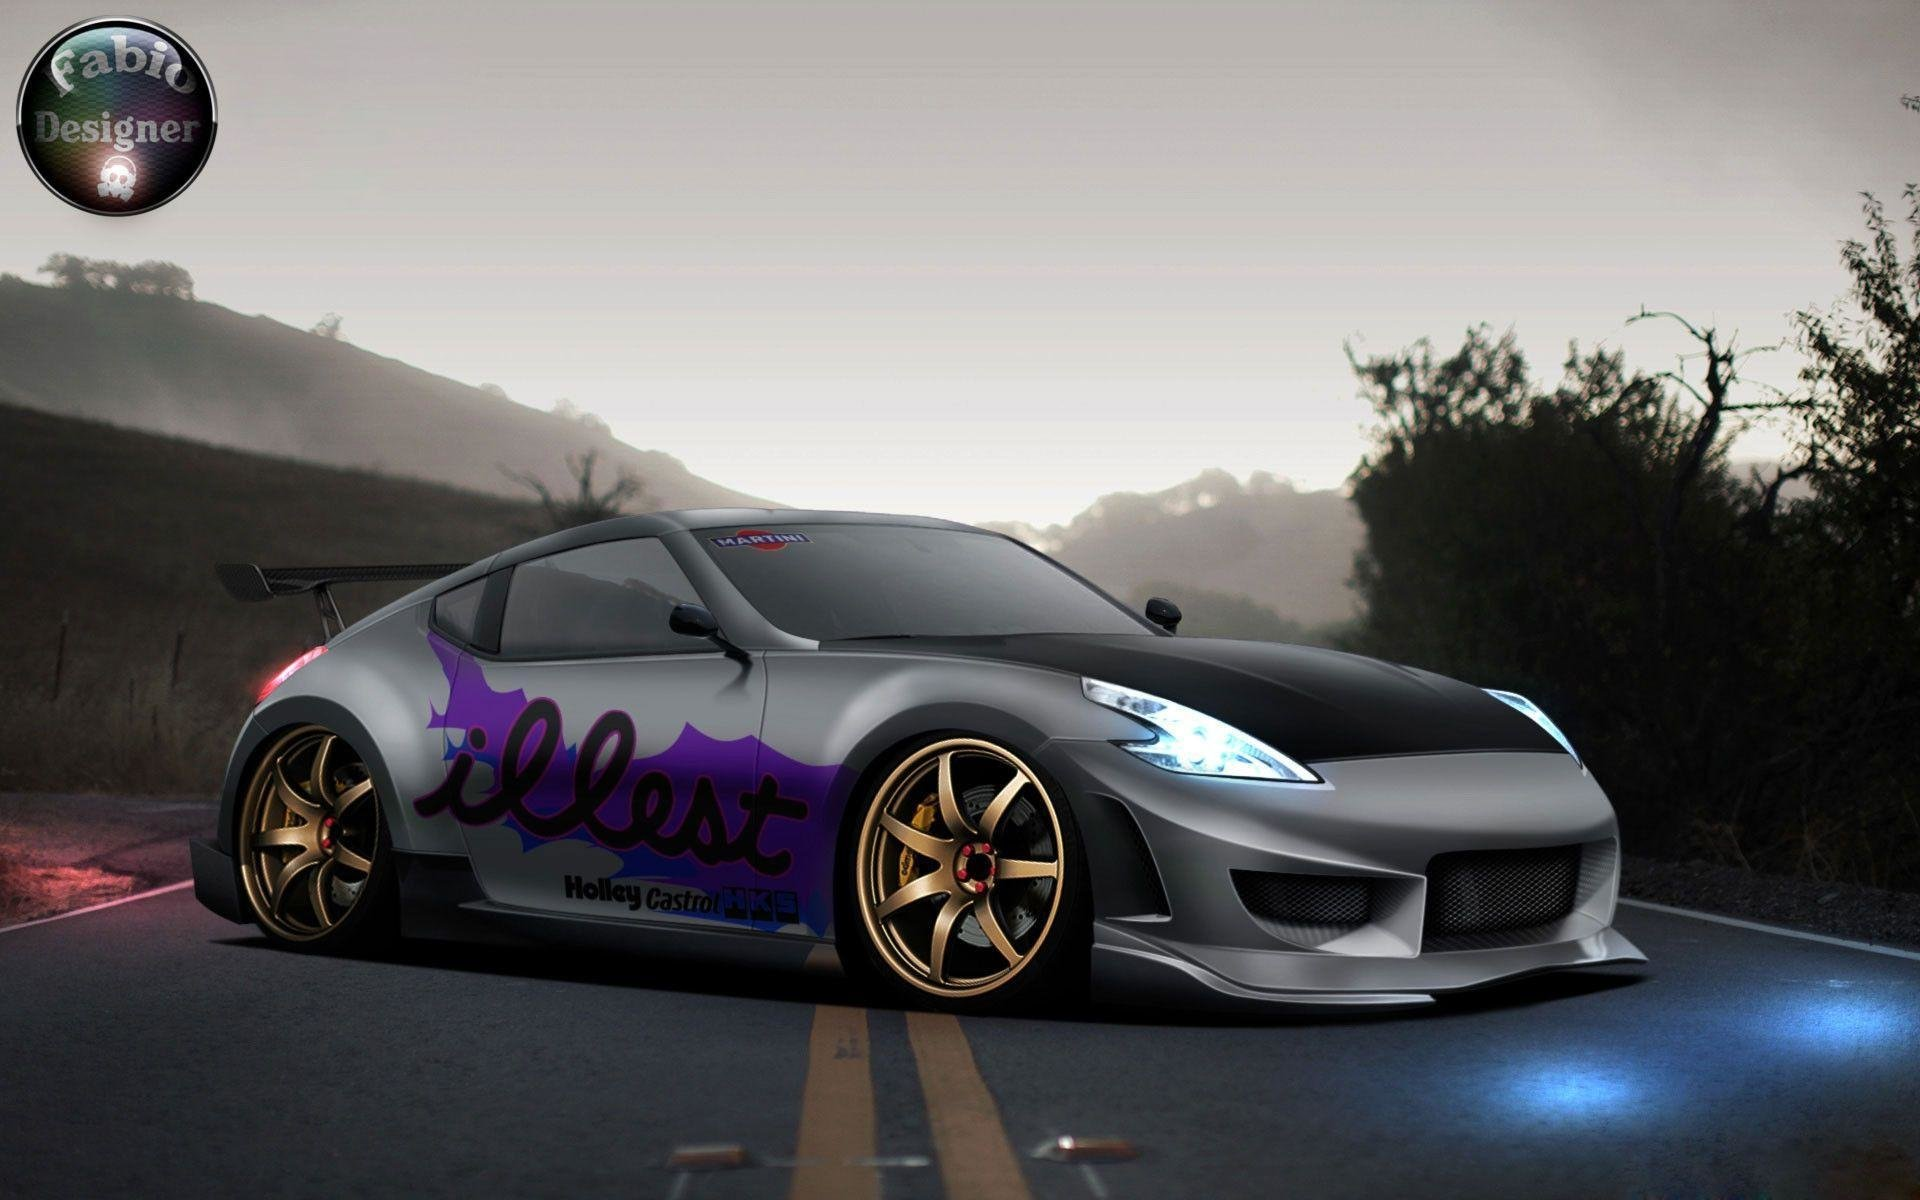 Latest Cool Car Wallpapers Hd Wallpaper Cave Free Download